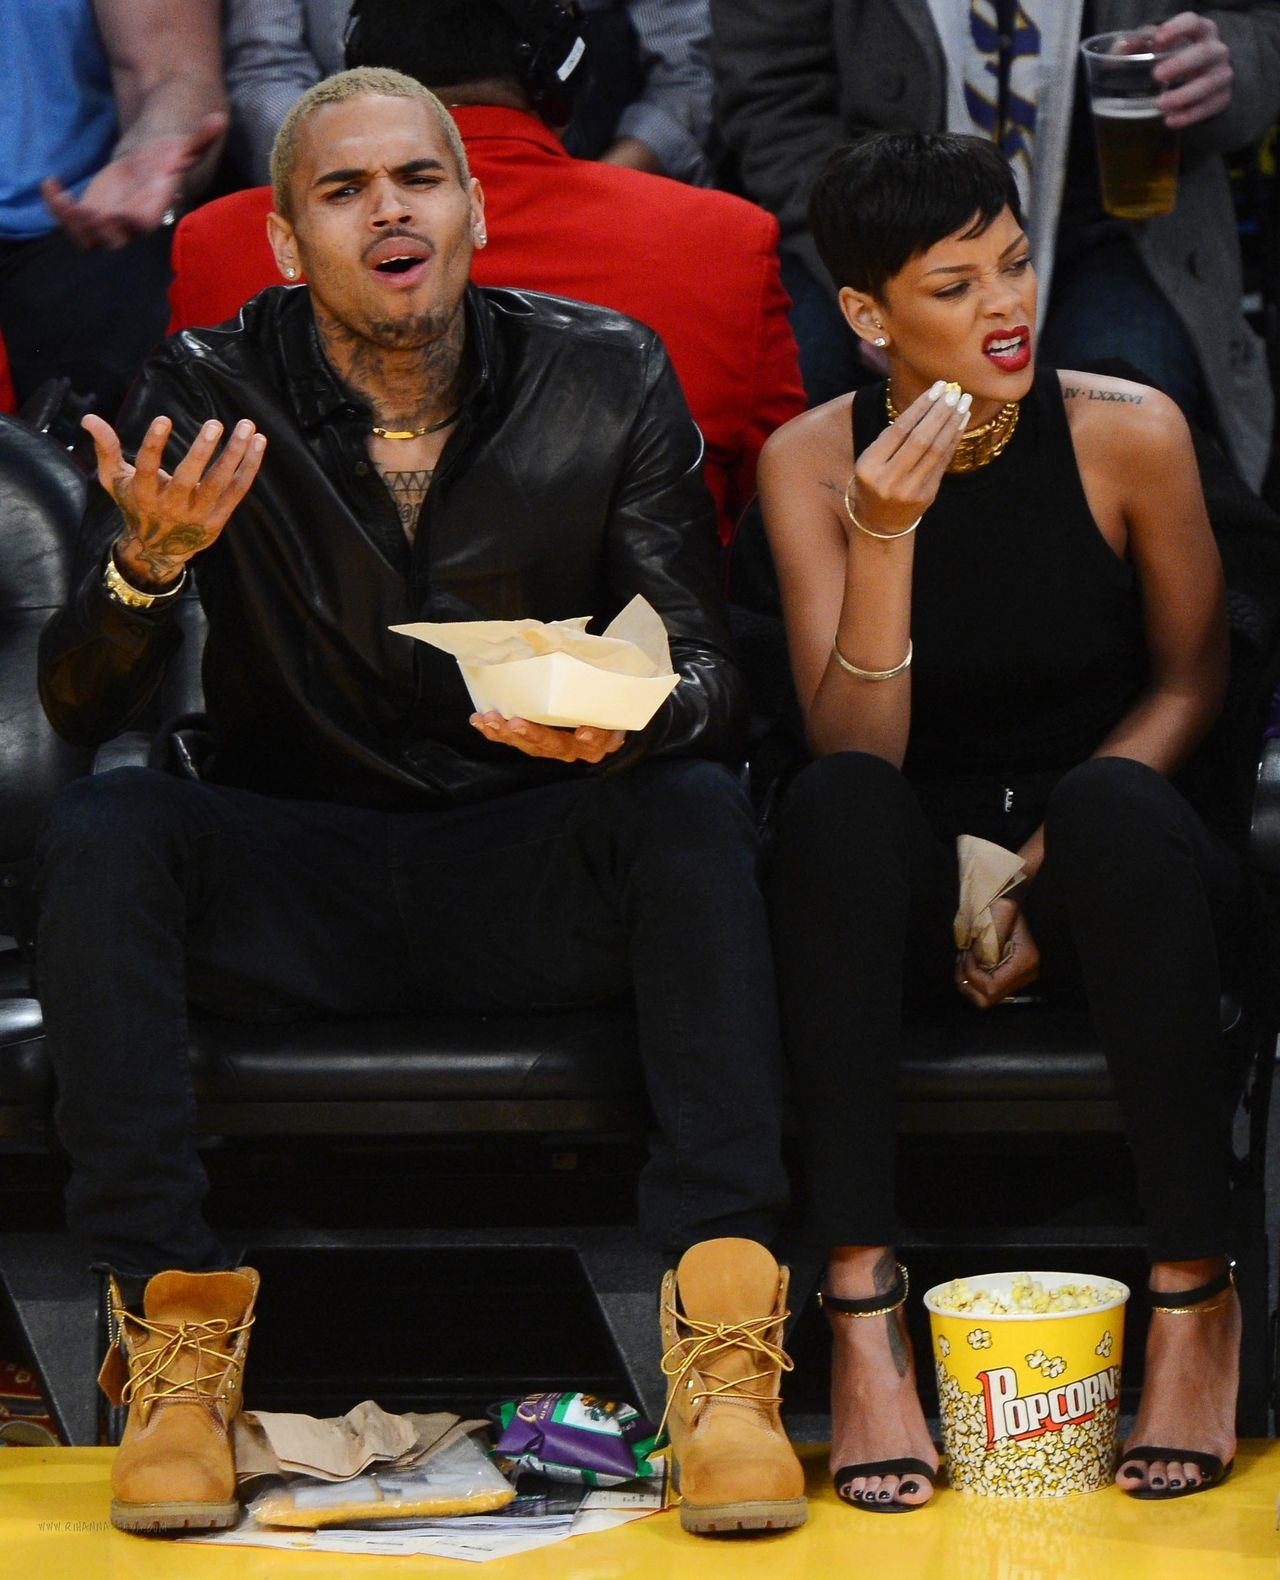 Chris Brown and Rihanna - literally me at school every day ...